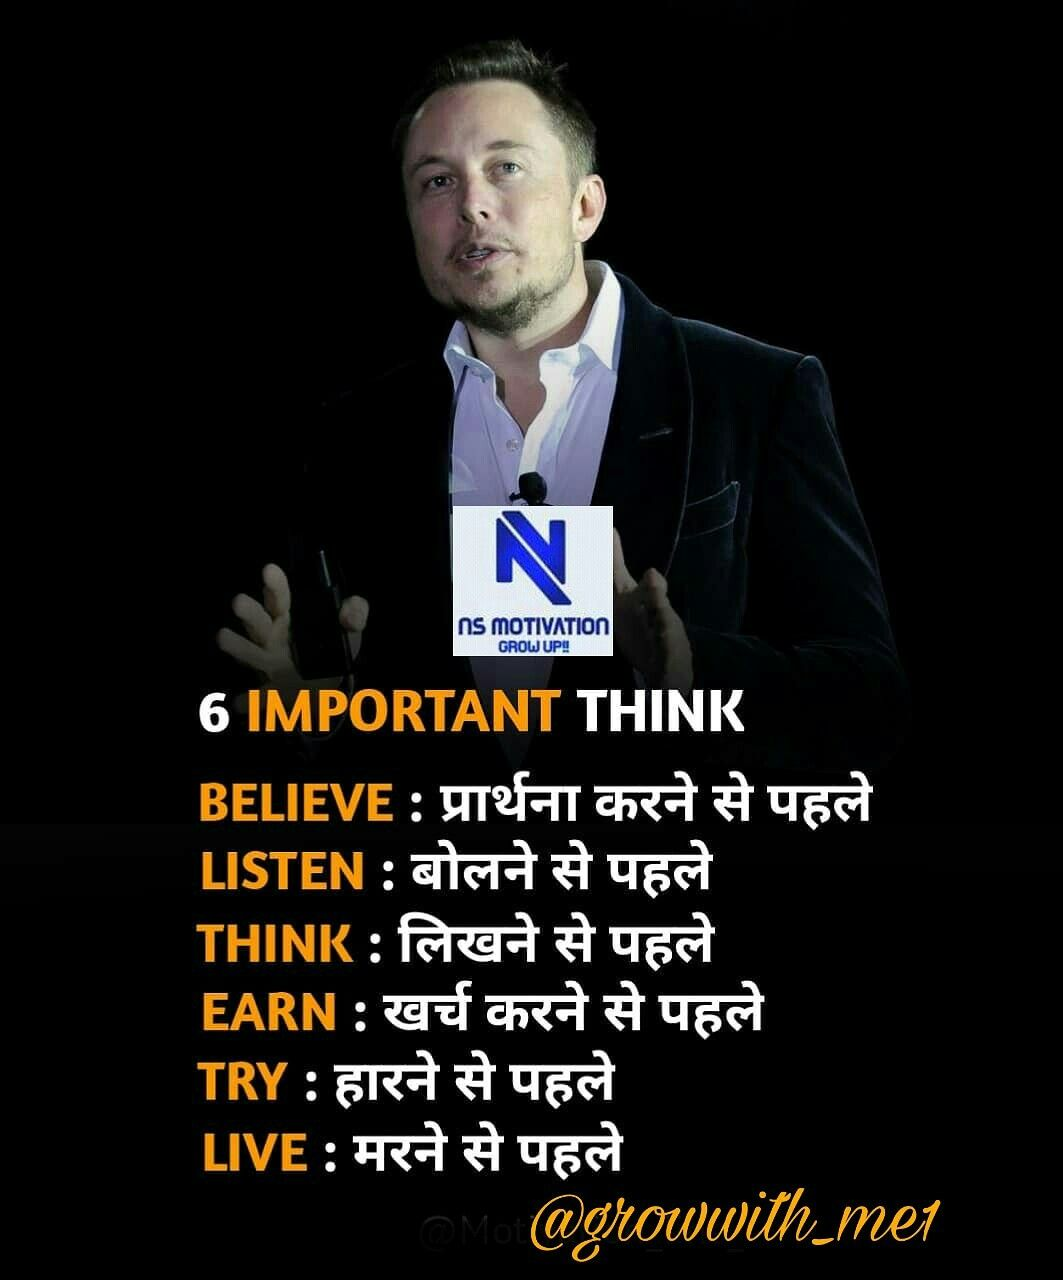 8 Funny Positive Attitude Quotes In Hindi Post Quotes About Attitude True Feelings Quotes Reality Quotes Positive Attitude Quotes Funny Quotes In Hindi Best Friend Quotes Funny Funny True Quotes Sarcastic Quotes Shayari Funny zoom karo Zoom Arey karp Toh sahi.